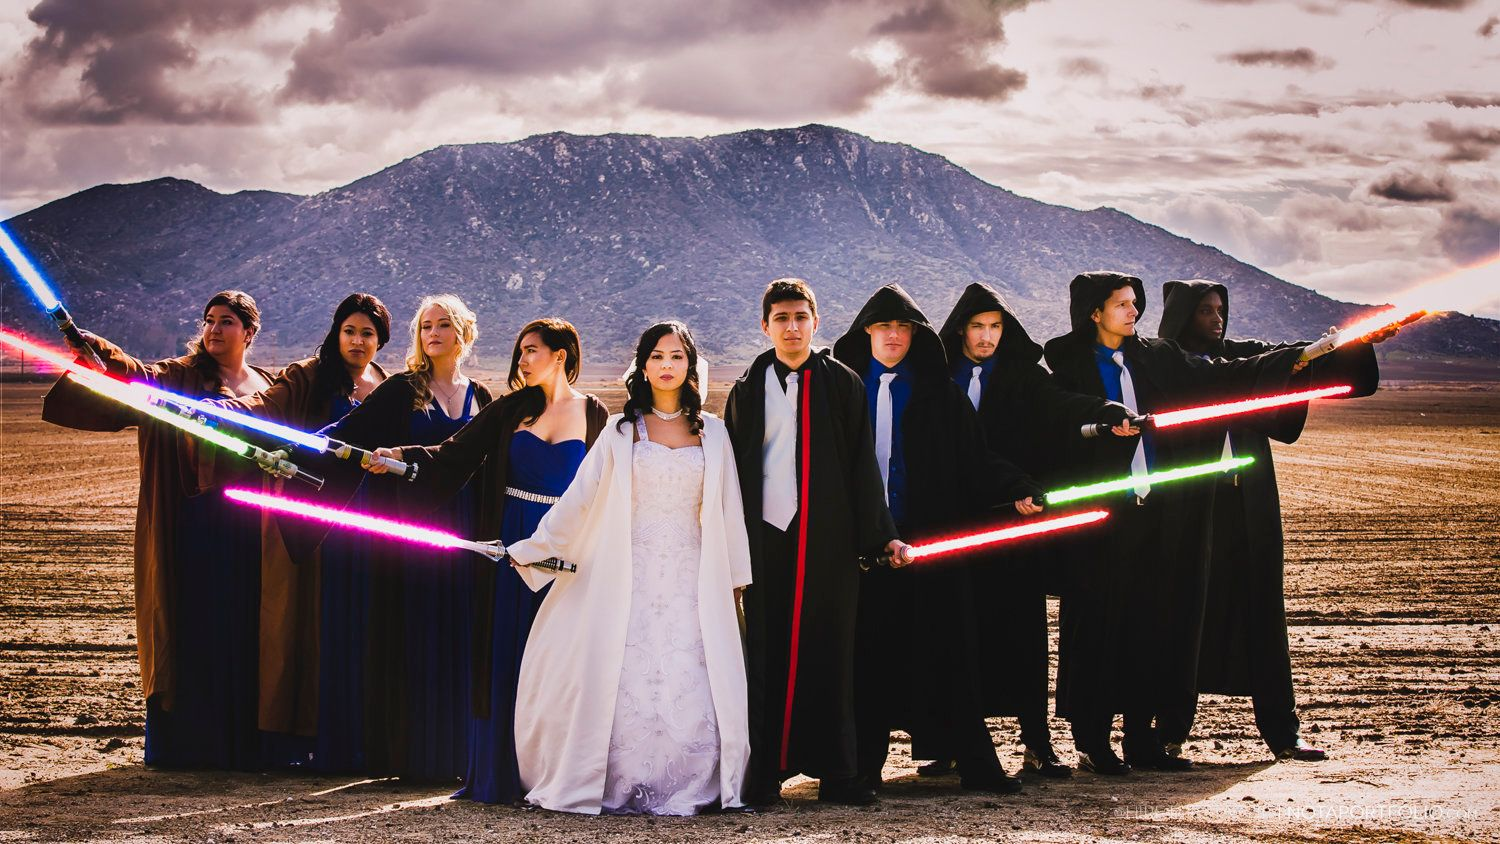 The whole bridal party took part in a choreographed lightsaber battle during the reception.